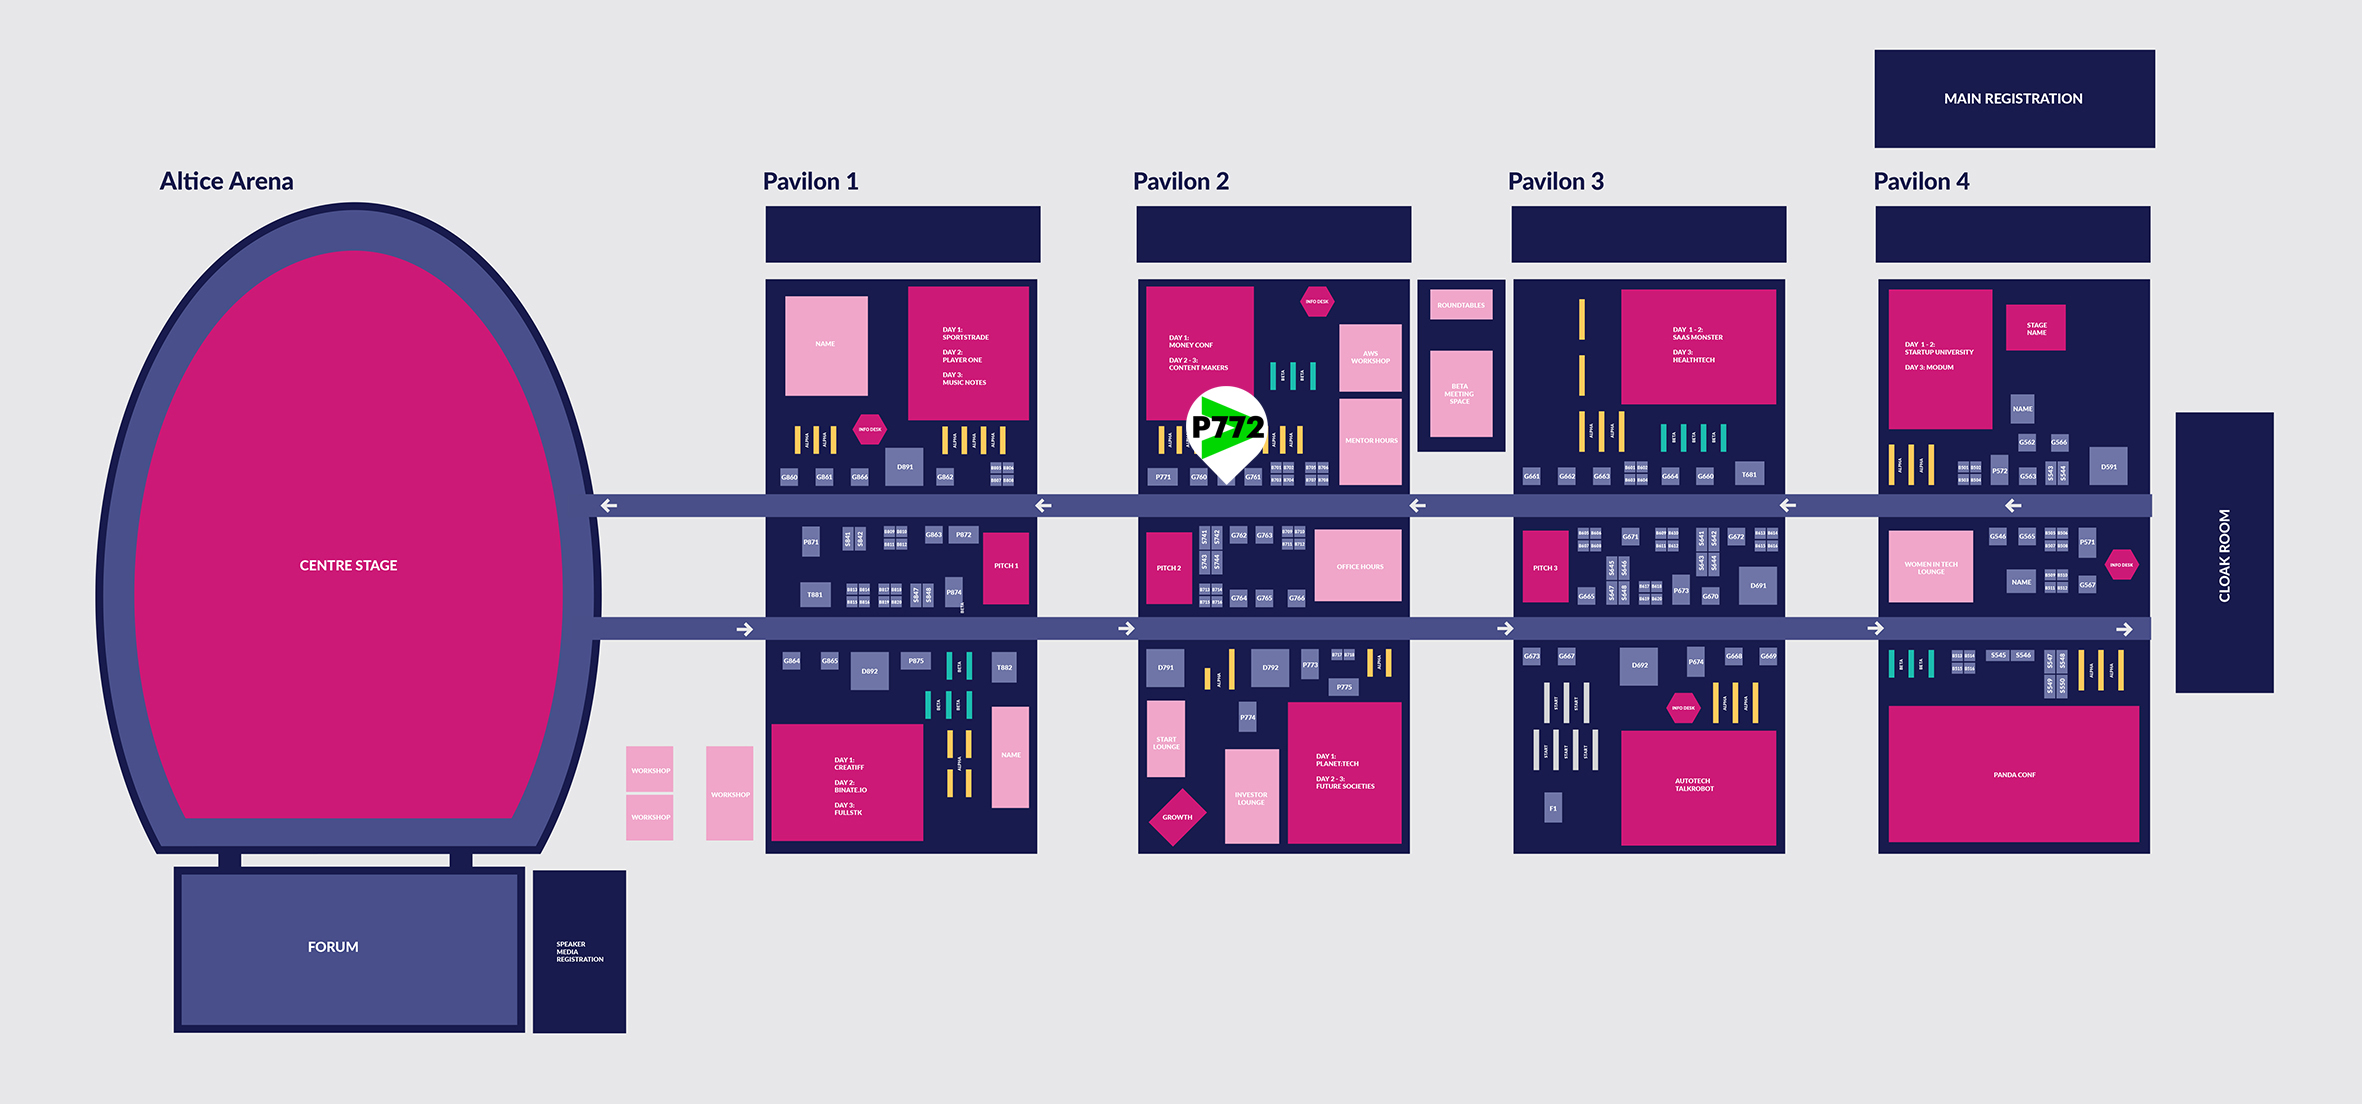 Click here to download the infographic. Web Summit Venue Full Map. This opens a new window.